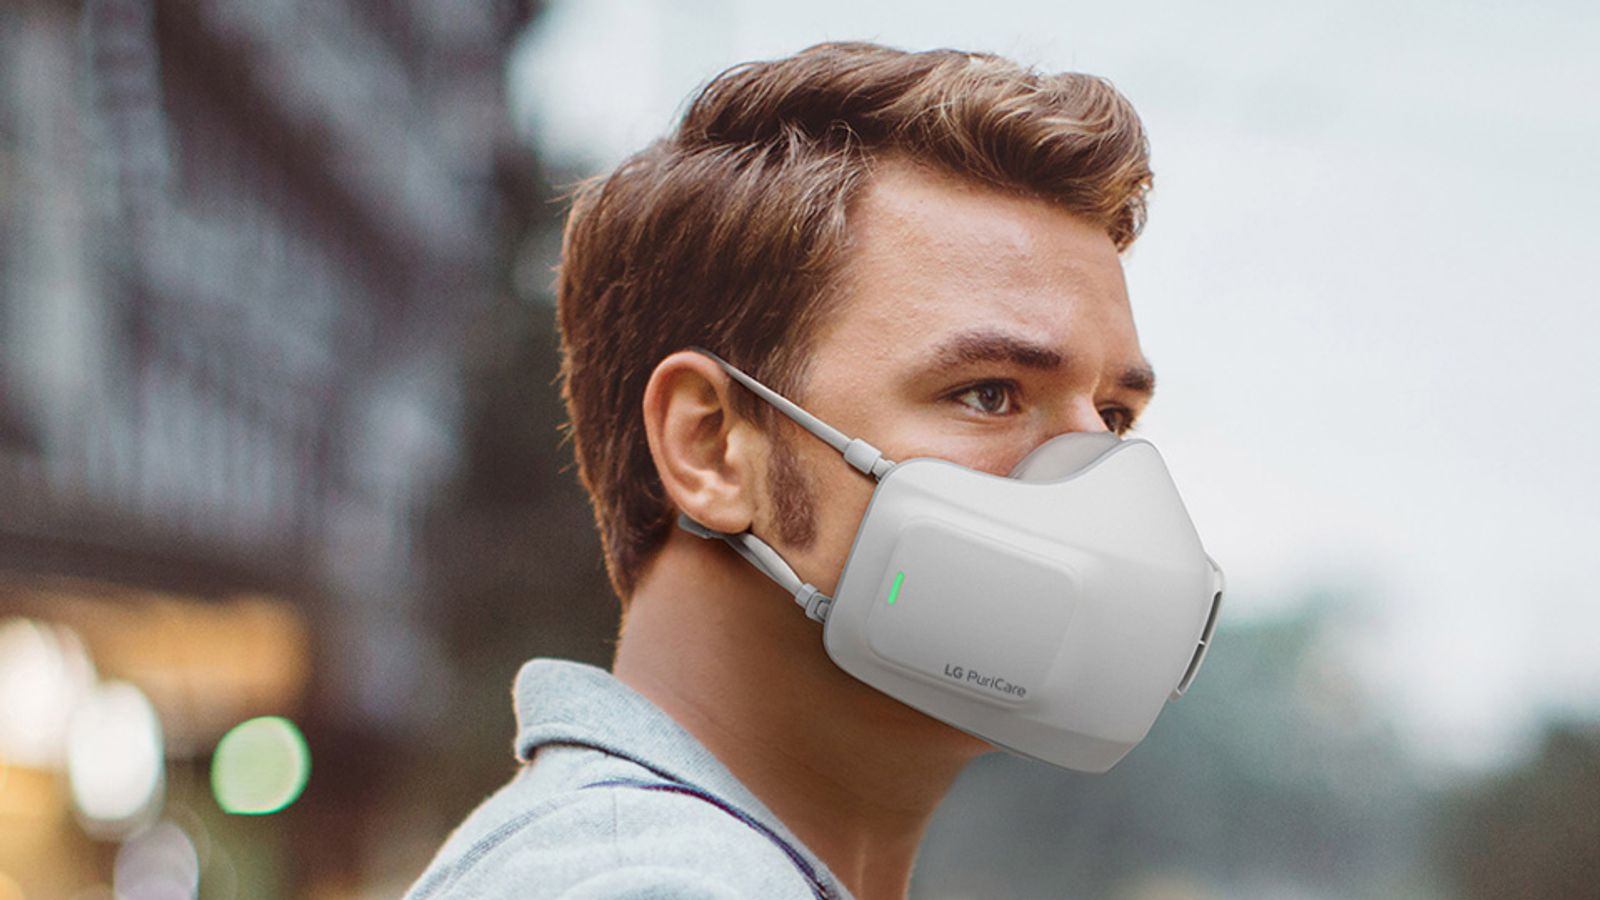 Coronavirus: LG unveils battery-powered experience mask dubbed 'wearable air purifier' | United kingdom Information